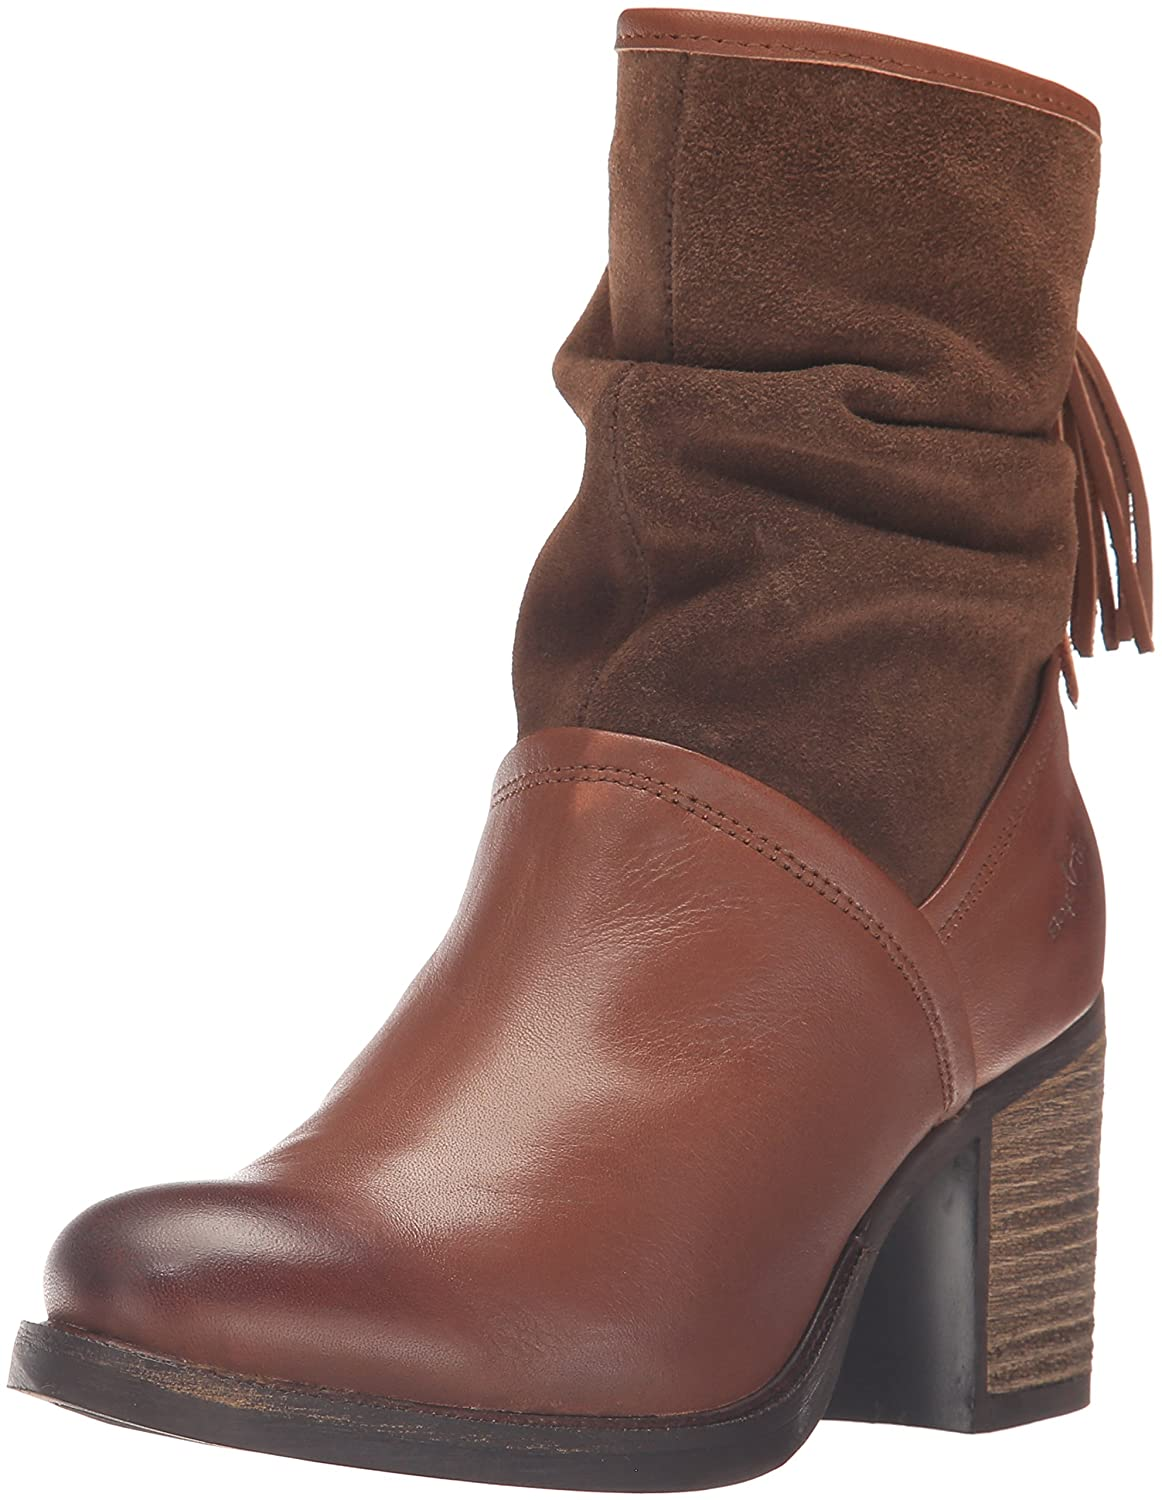 Bos. & Co. Women's Bailee Snow Boot B01CSH09R6 36 EU/5.5-6 M US|Cognac/Brown Every Leather